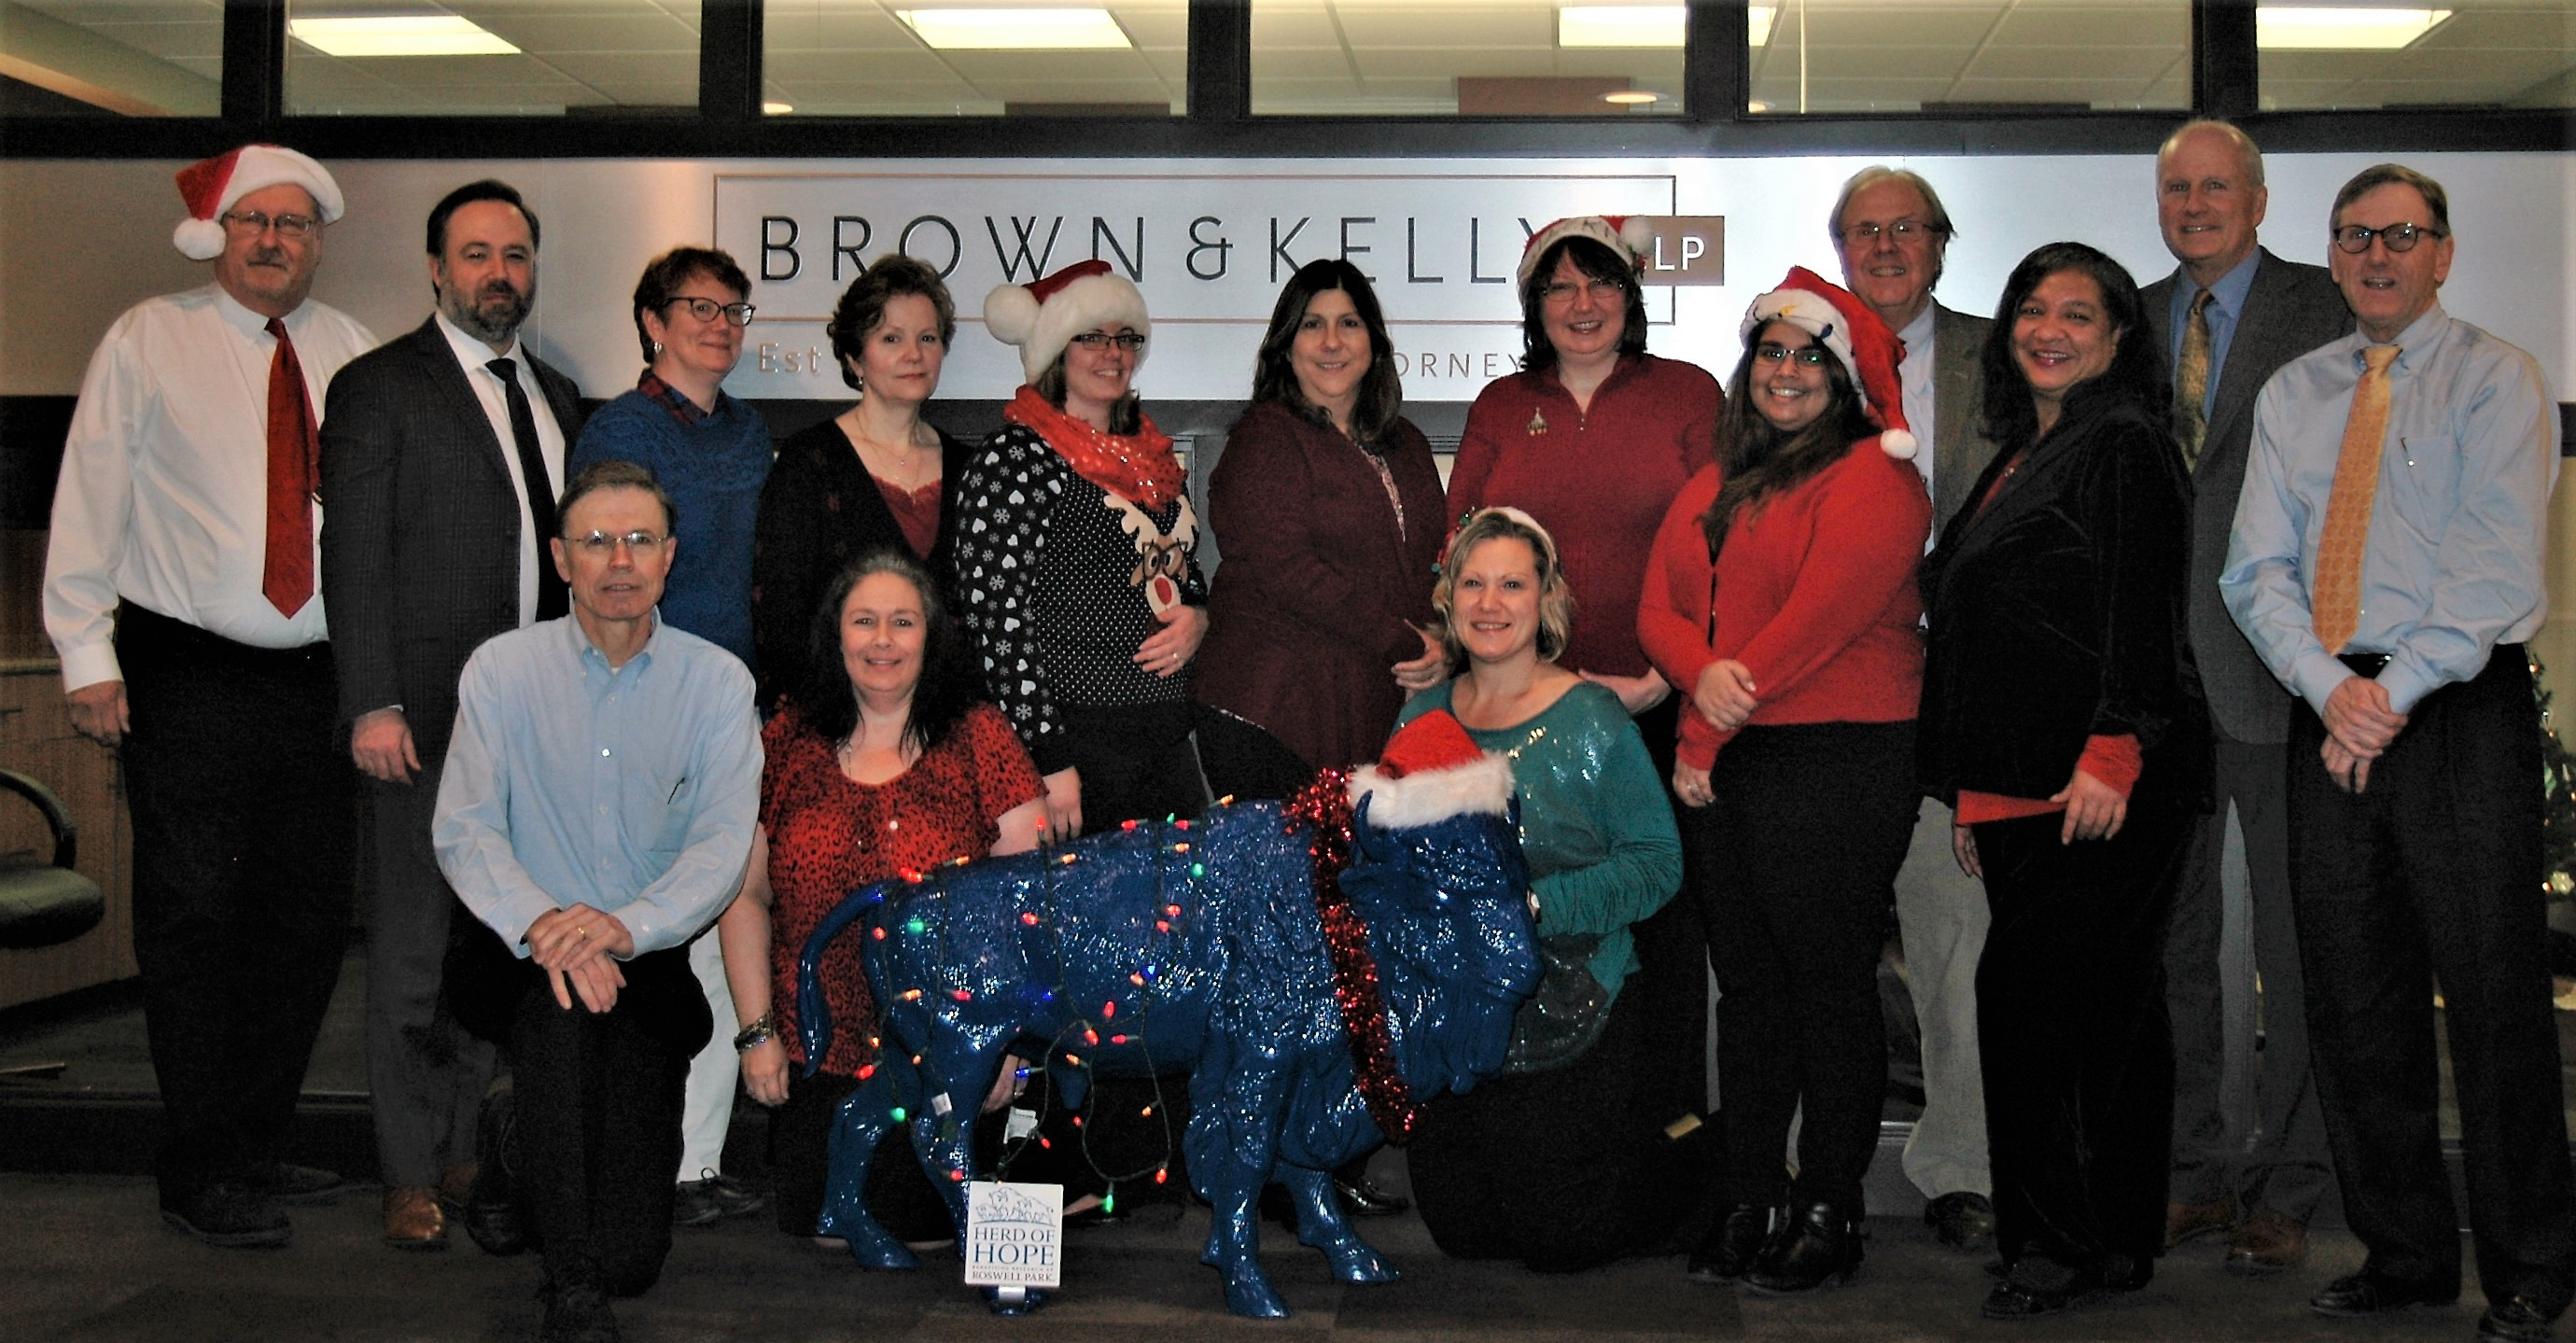 """Brown & Kelly has joined the """"Herd of Hope campaign with Roswell Park."""